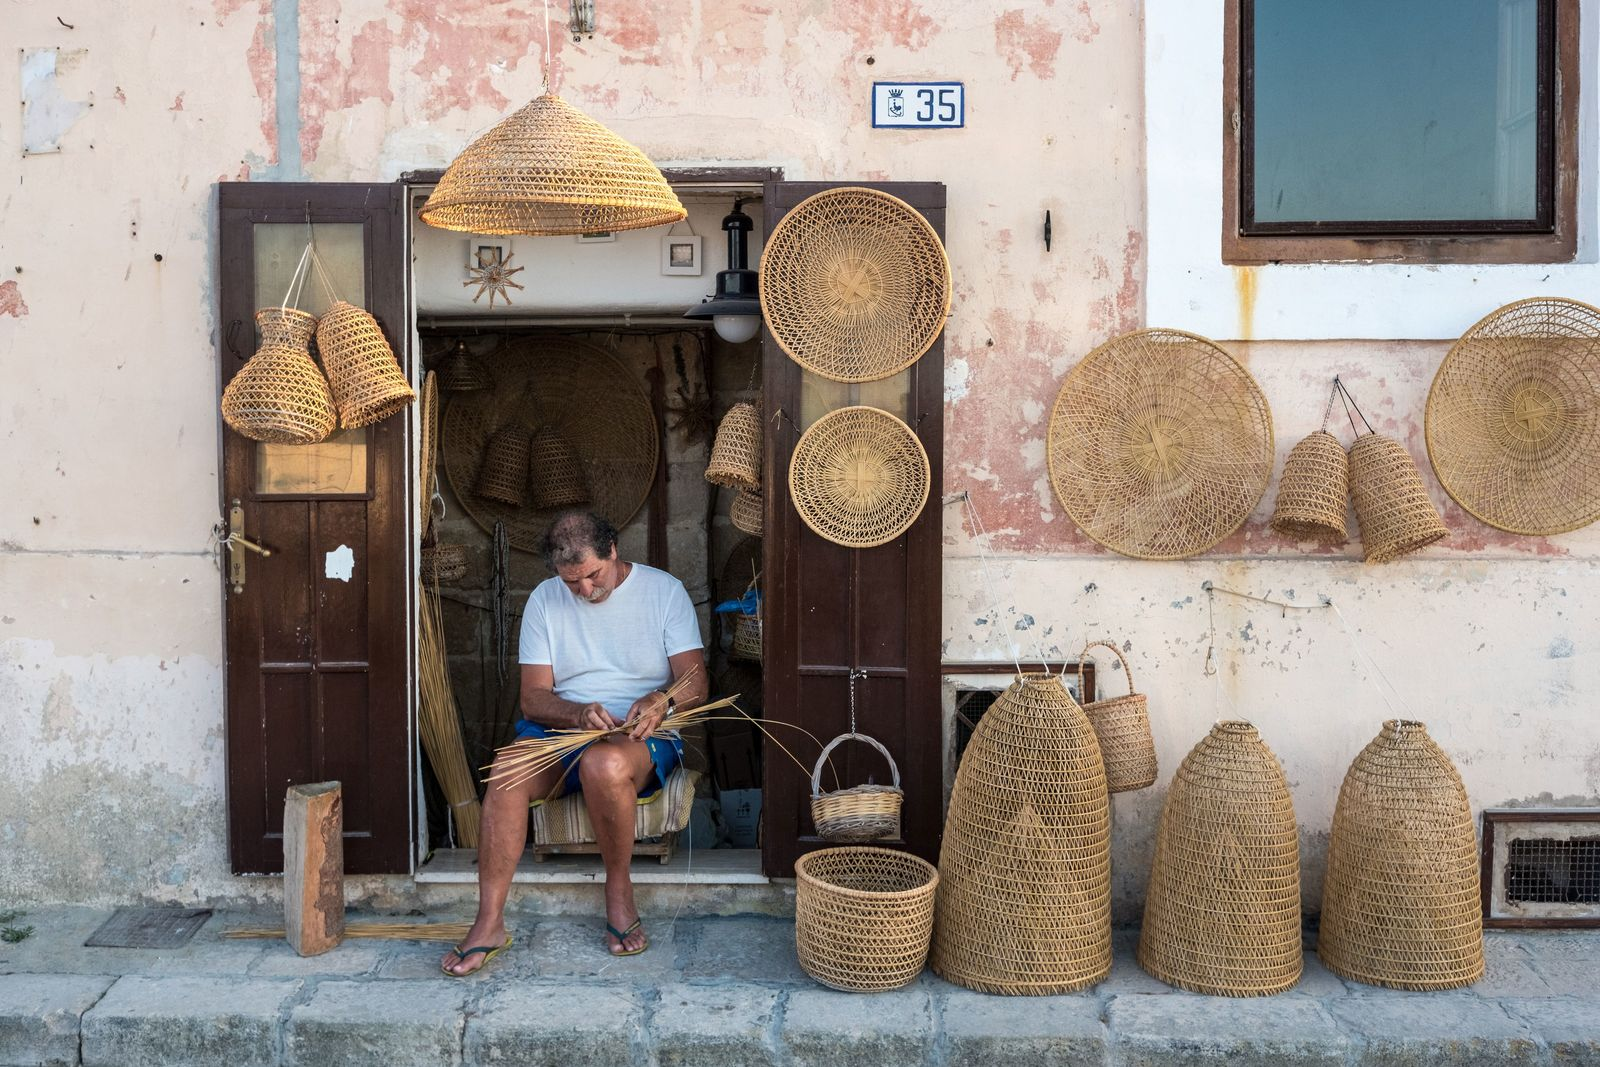 In pictures: the villages, beaches and grottoes that dot the coast of Puglia